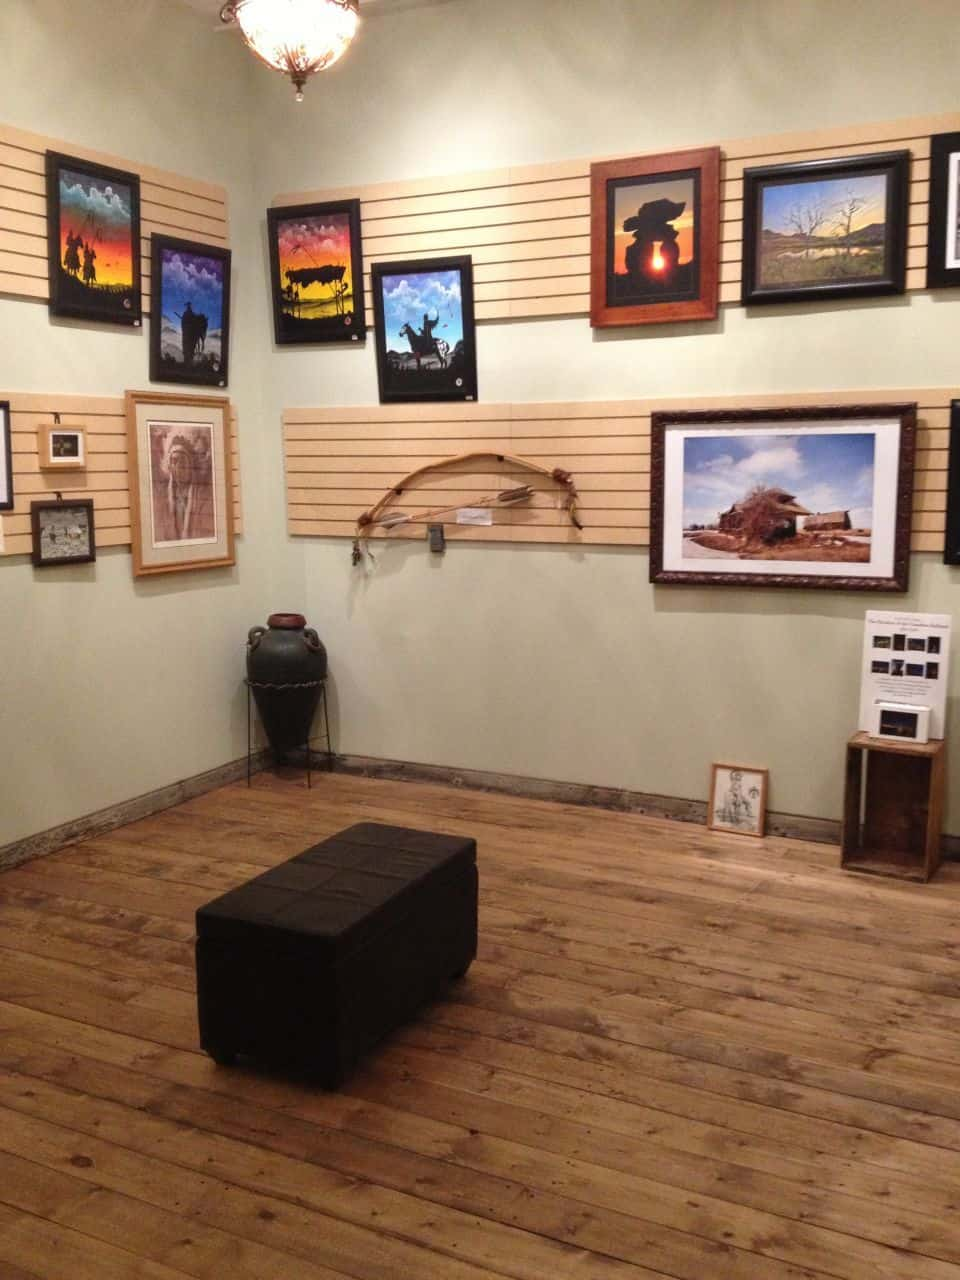 We are fortunate to have space for a gallery where we promote local artists.  We have paintings, carvings, photography, bead work, scratch board.  This is a great platform for the artists to show off their talents to the world.